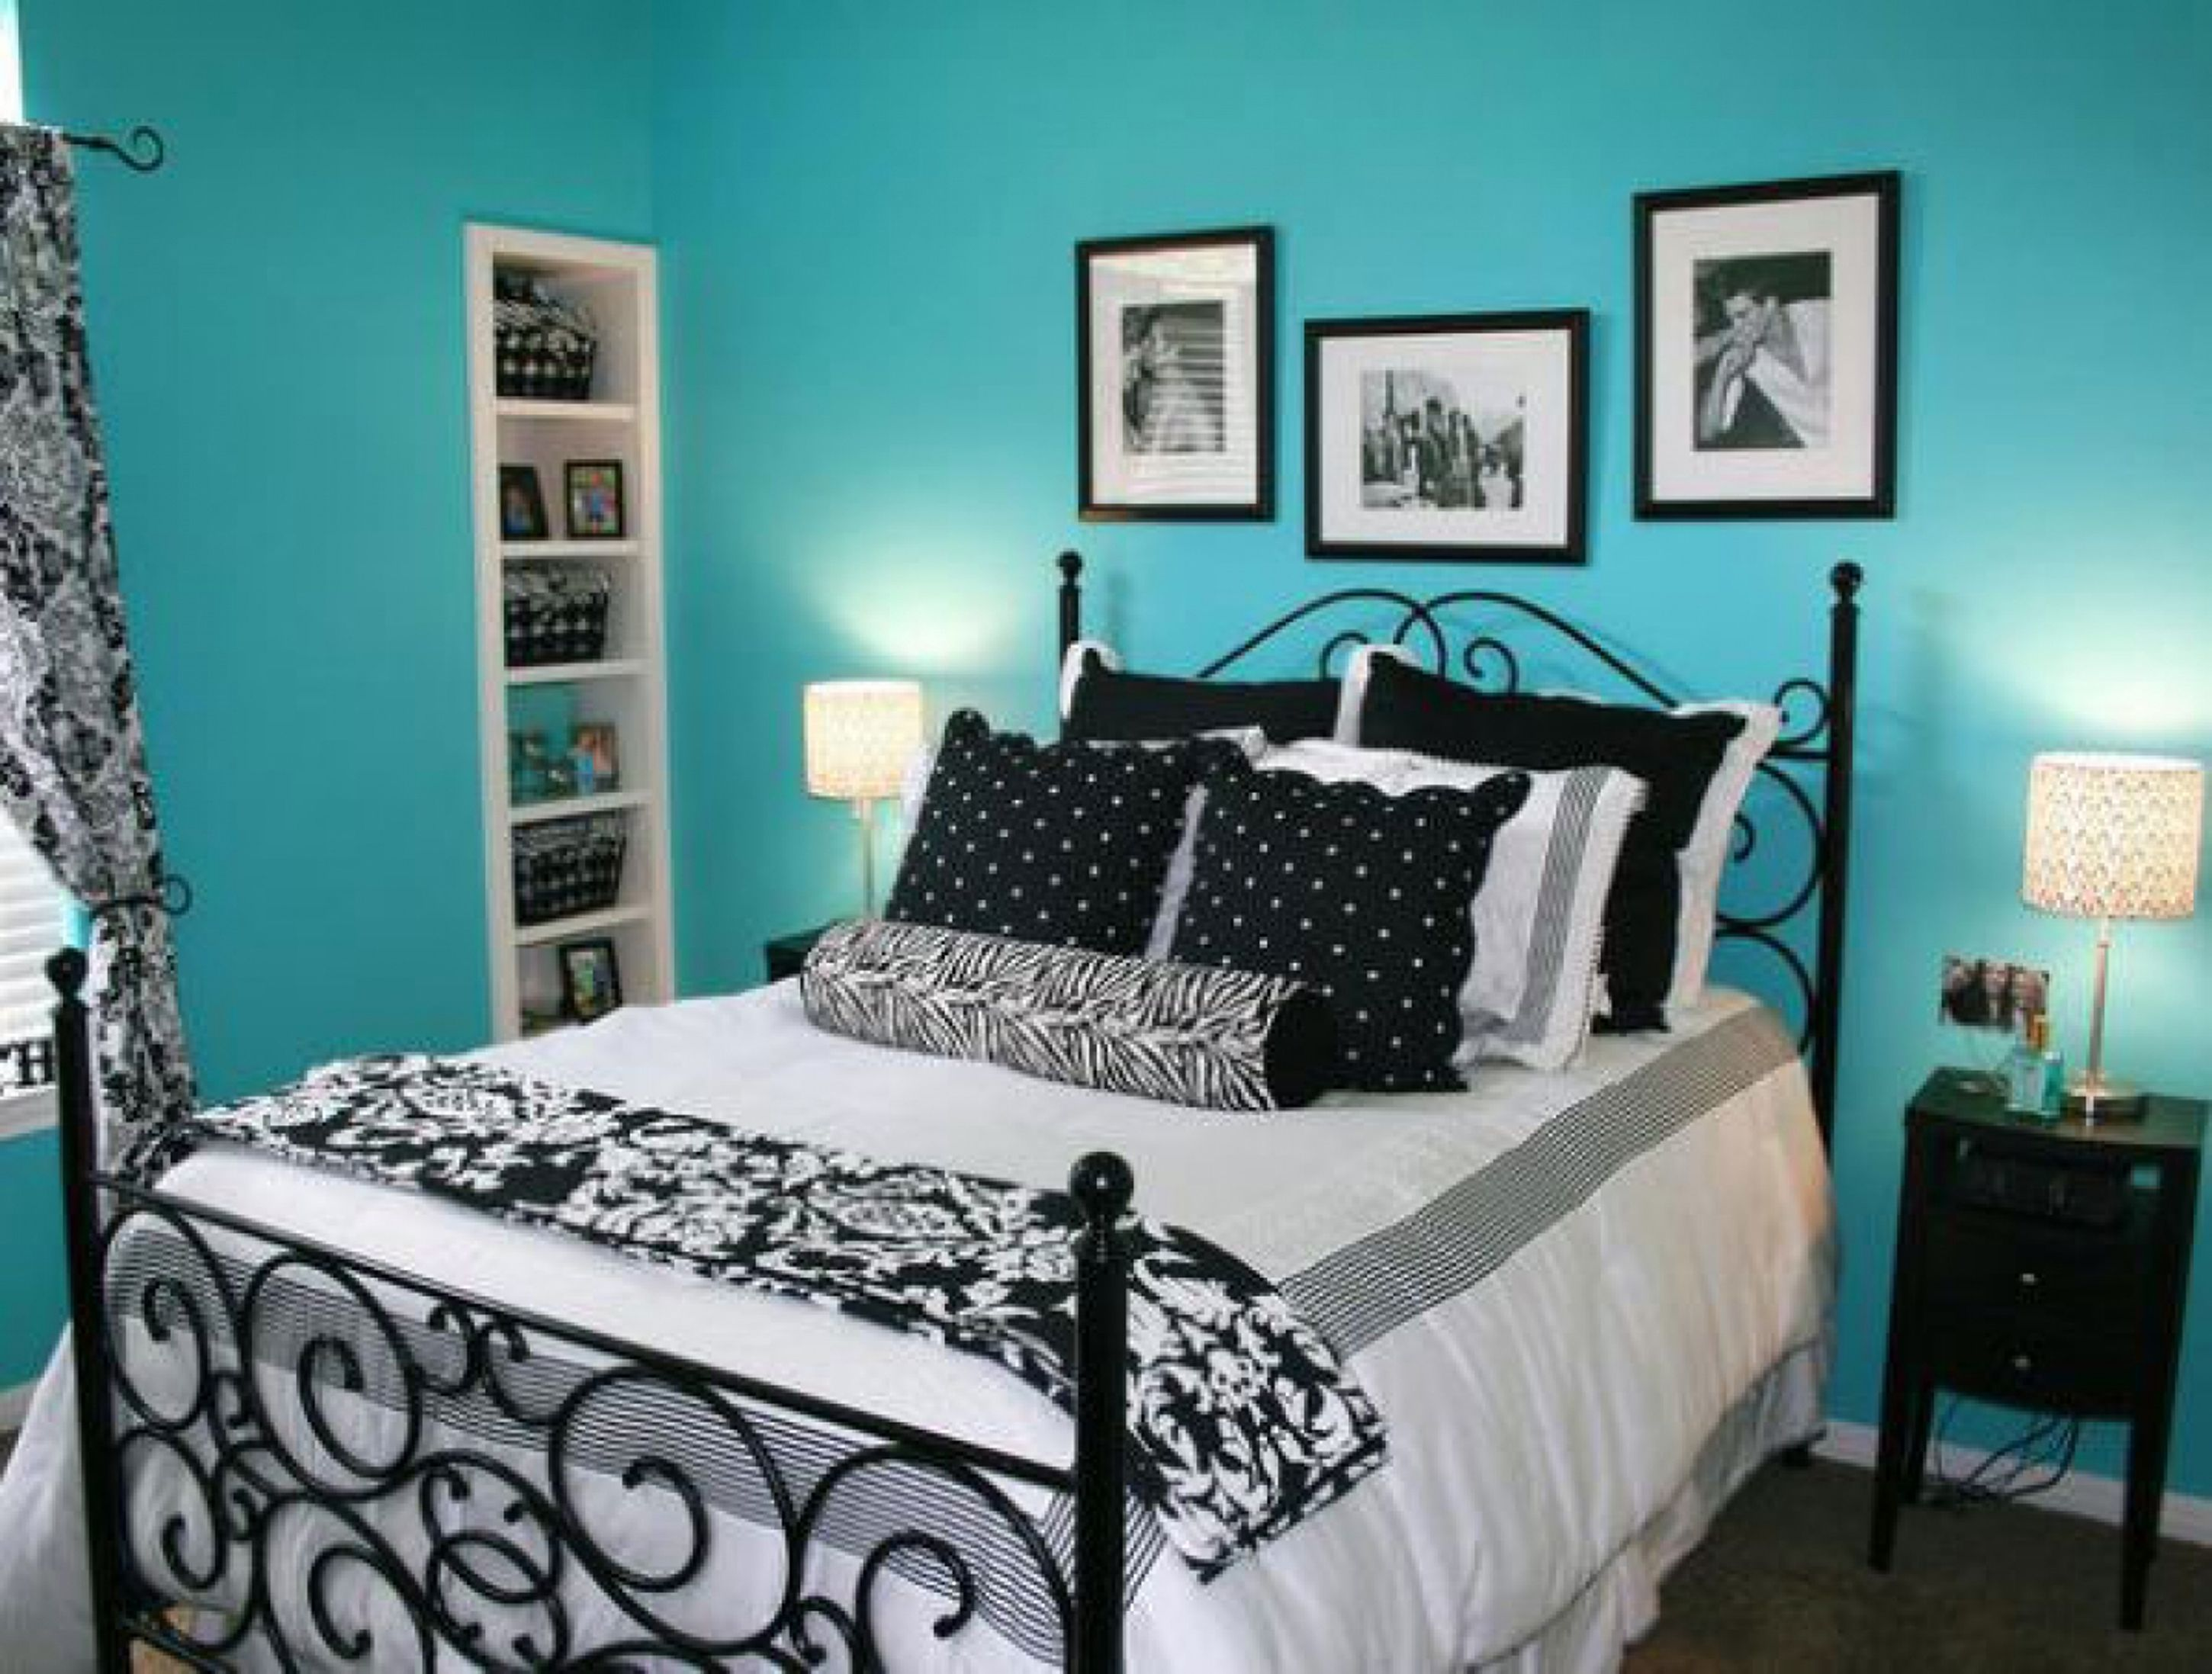 Creative Colour Scheme Bedroom Idea With Cool Mint Wall With Brown